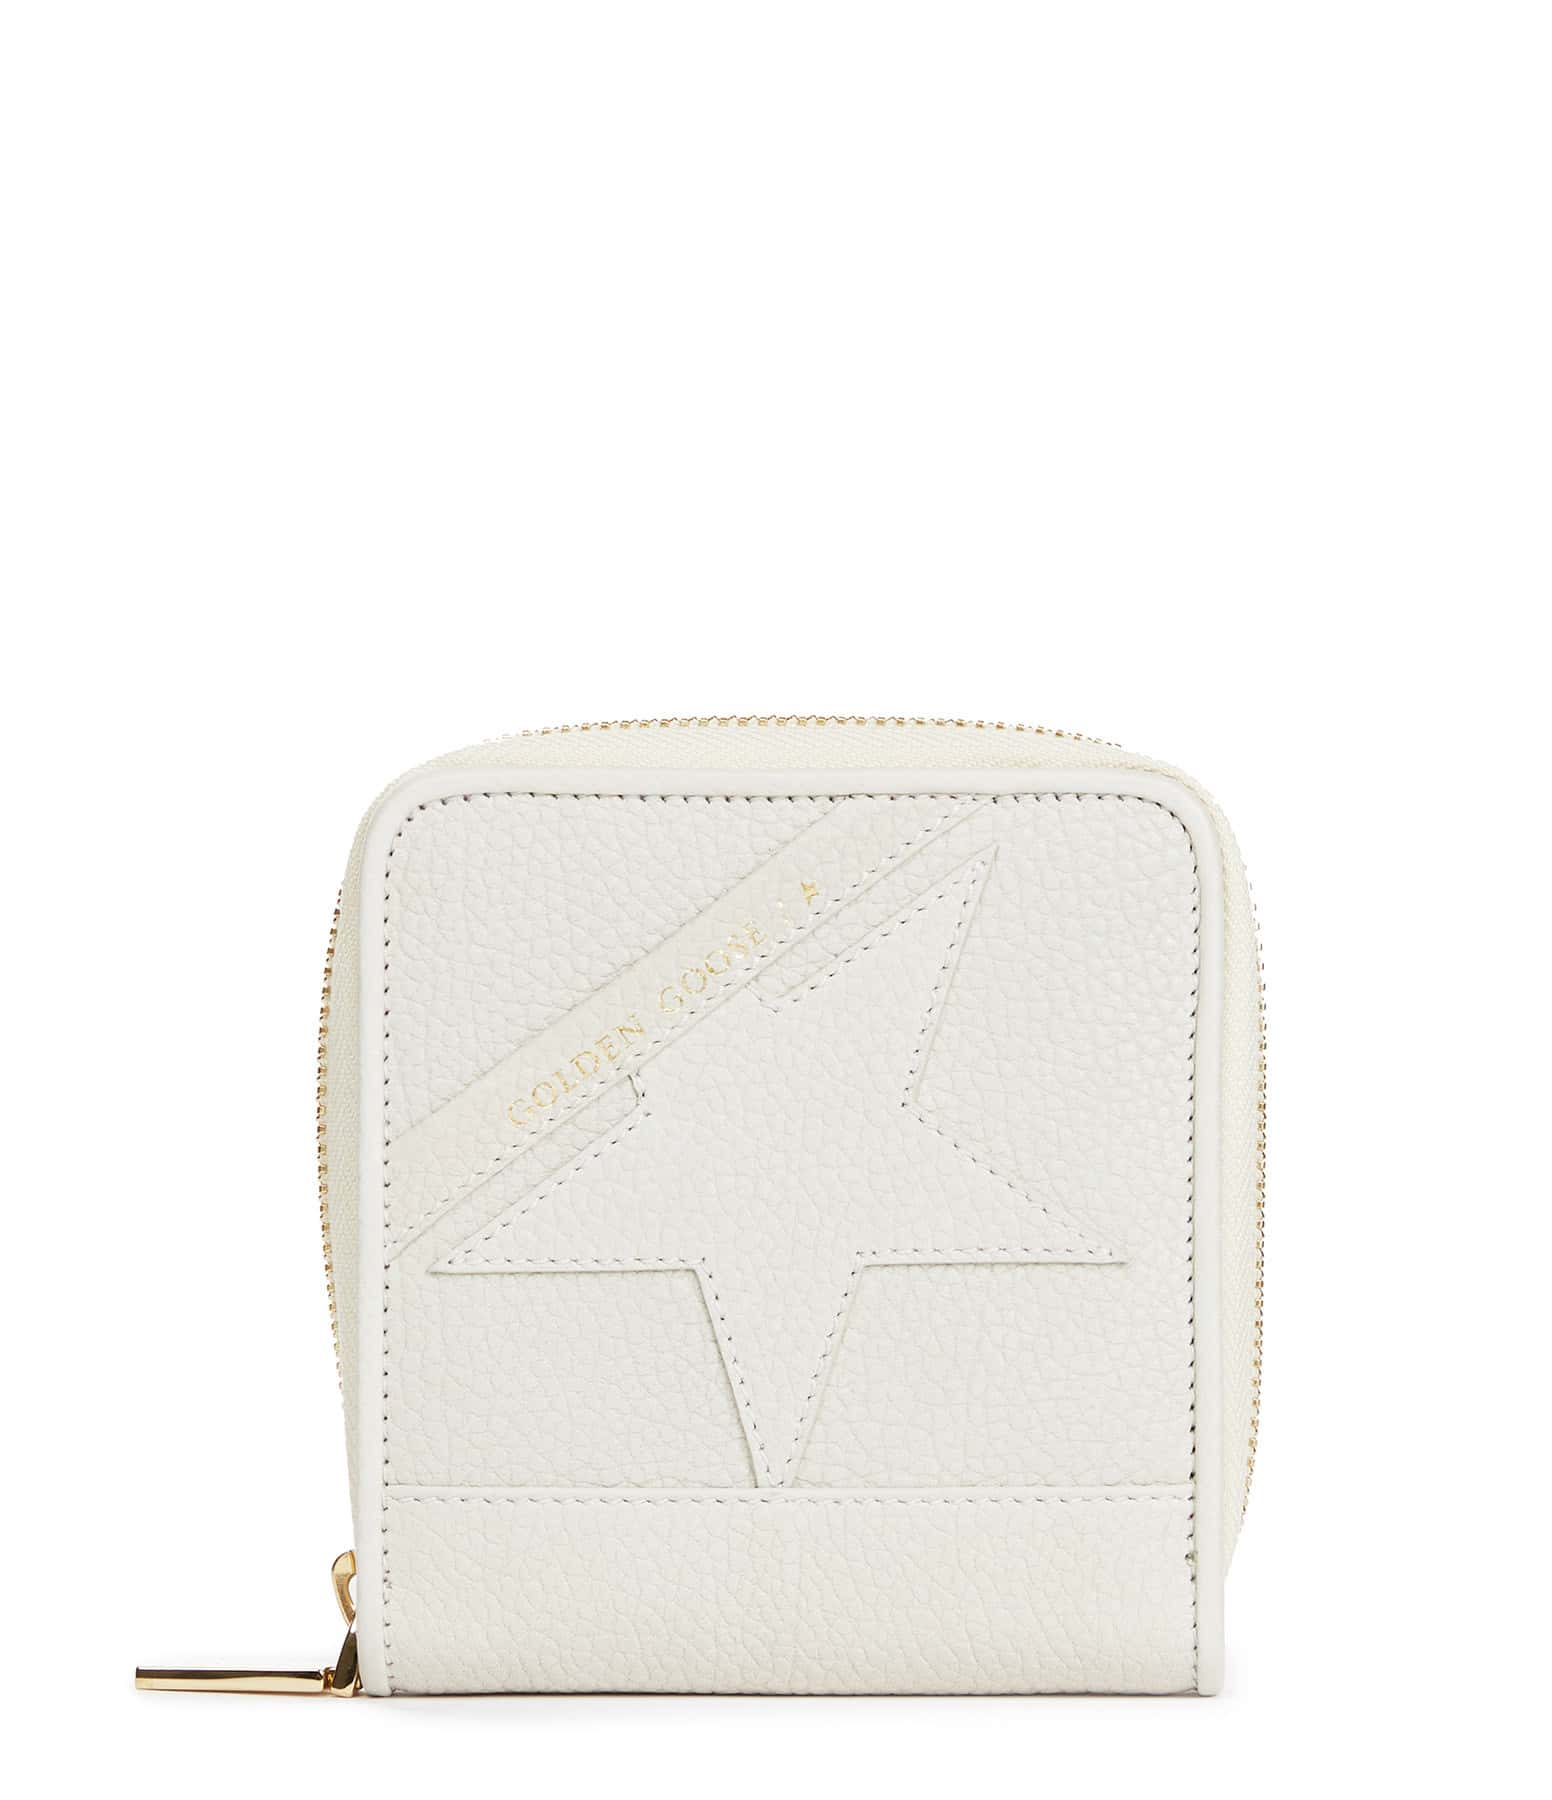 GOLDEN GOOSE - Portefeuille Star Medium Cuir Grainé Blanc